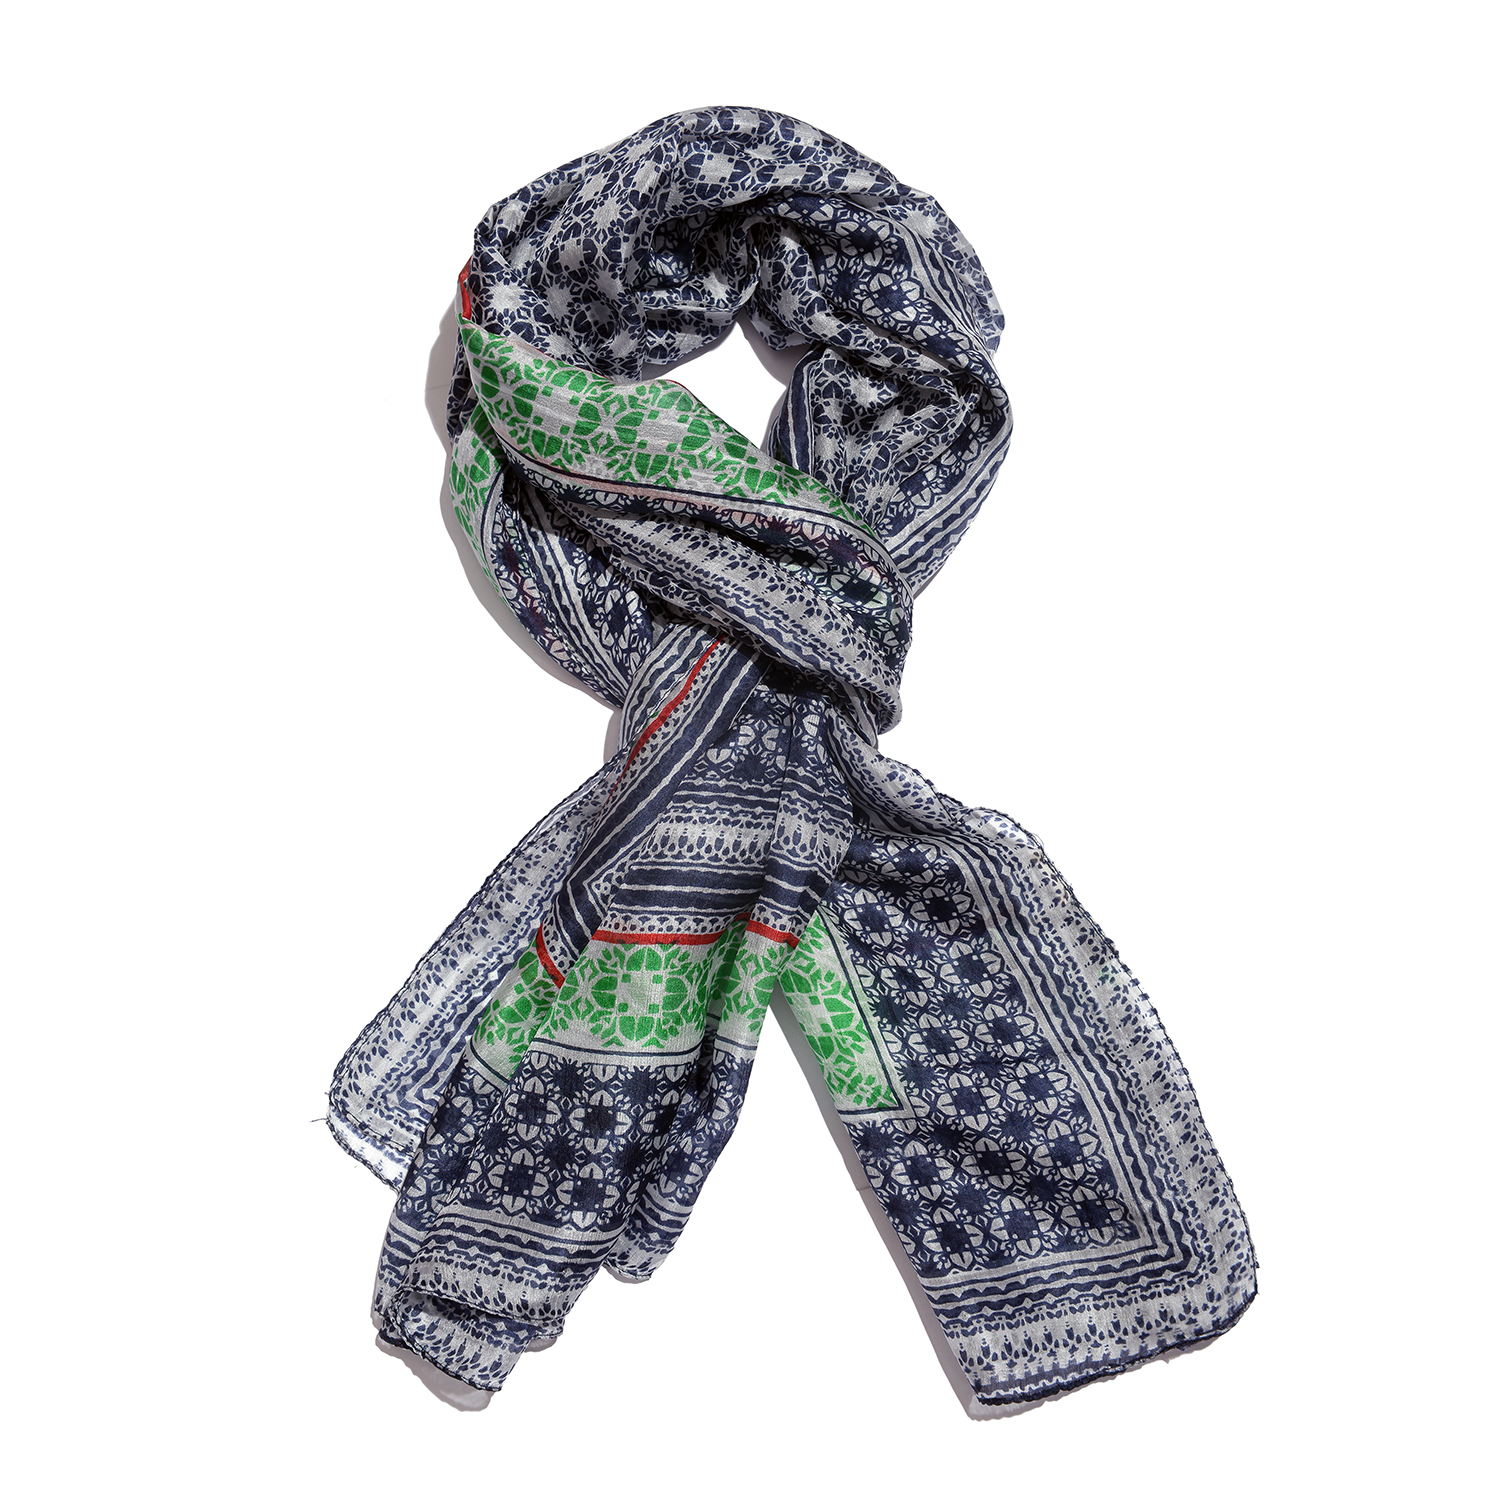 7593f97bcf8 Blue, White and Green 100% Natural Mulberry Silk Quatrefoil Printed Scarf  (78x40 in)